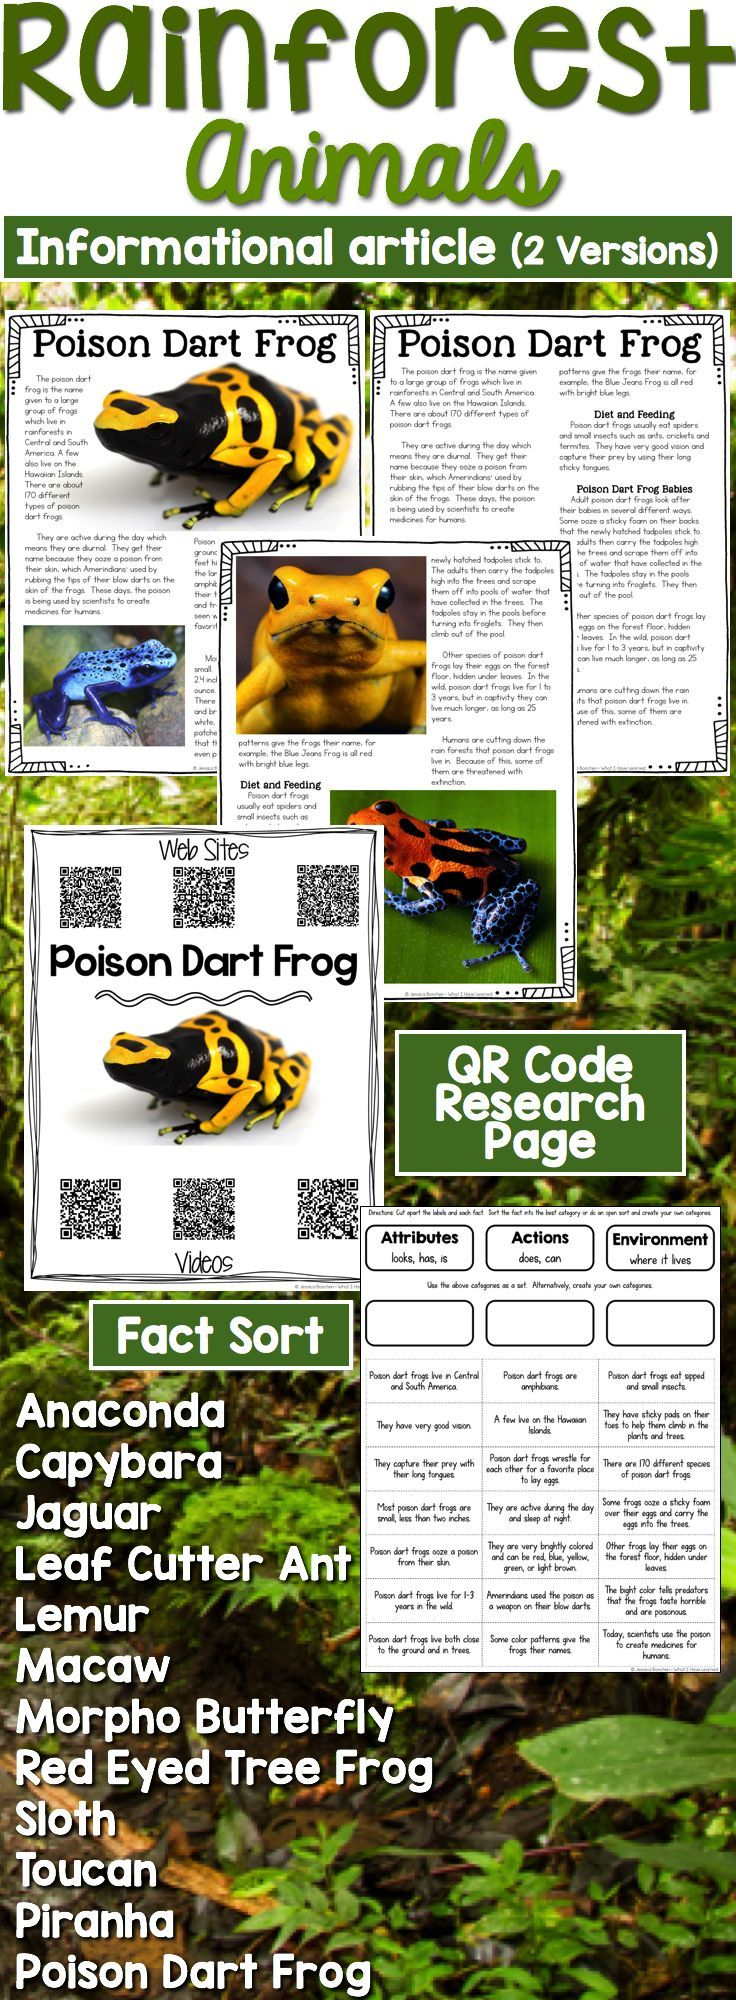 qr code research Research access may be the single best resource for information about how to use qr codes in market research here's a link to all our articles on those little (not always) black and white scannable codes.